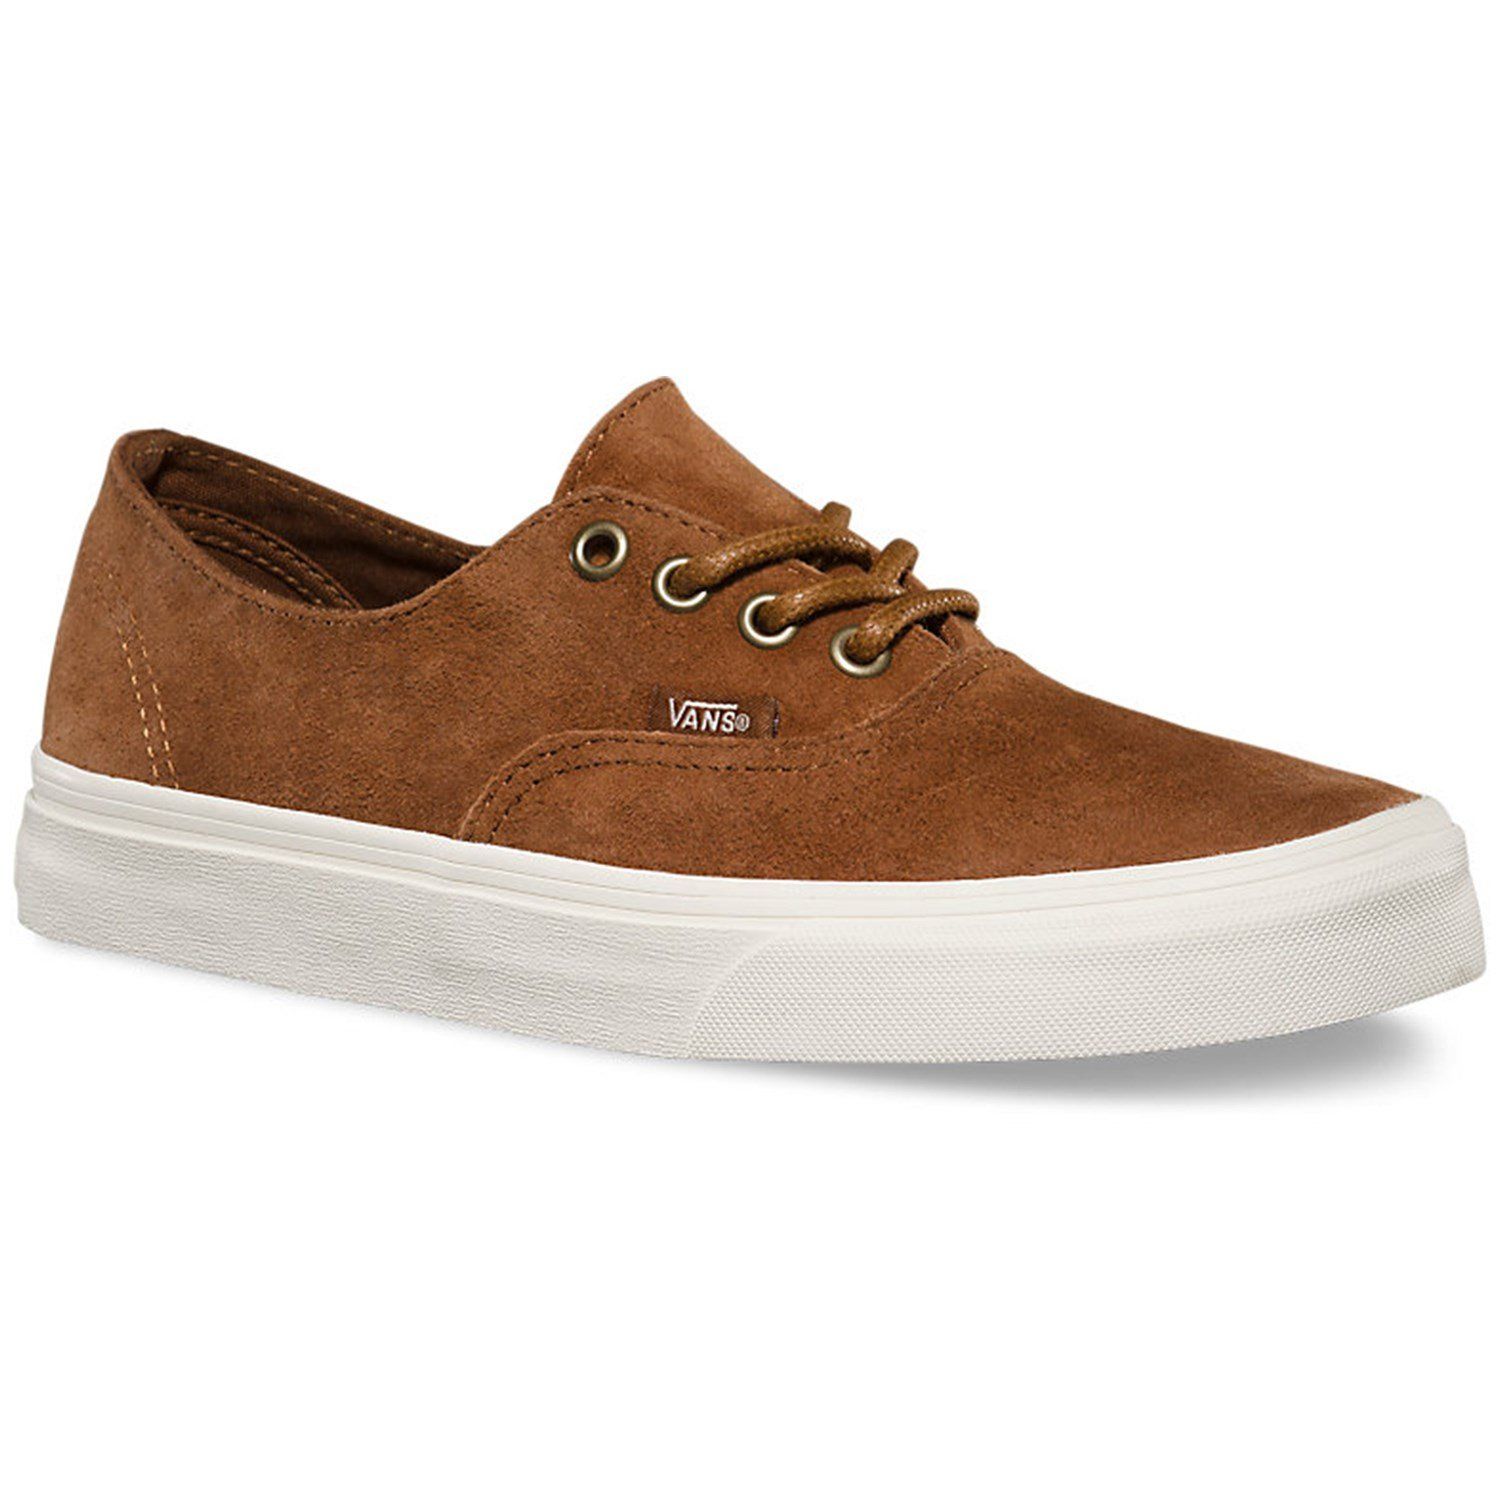 Vans Authentic Decon Scotchgard Shoes - Women s  2598add6eaf